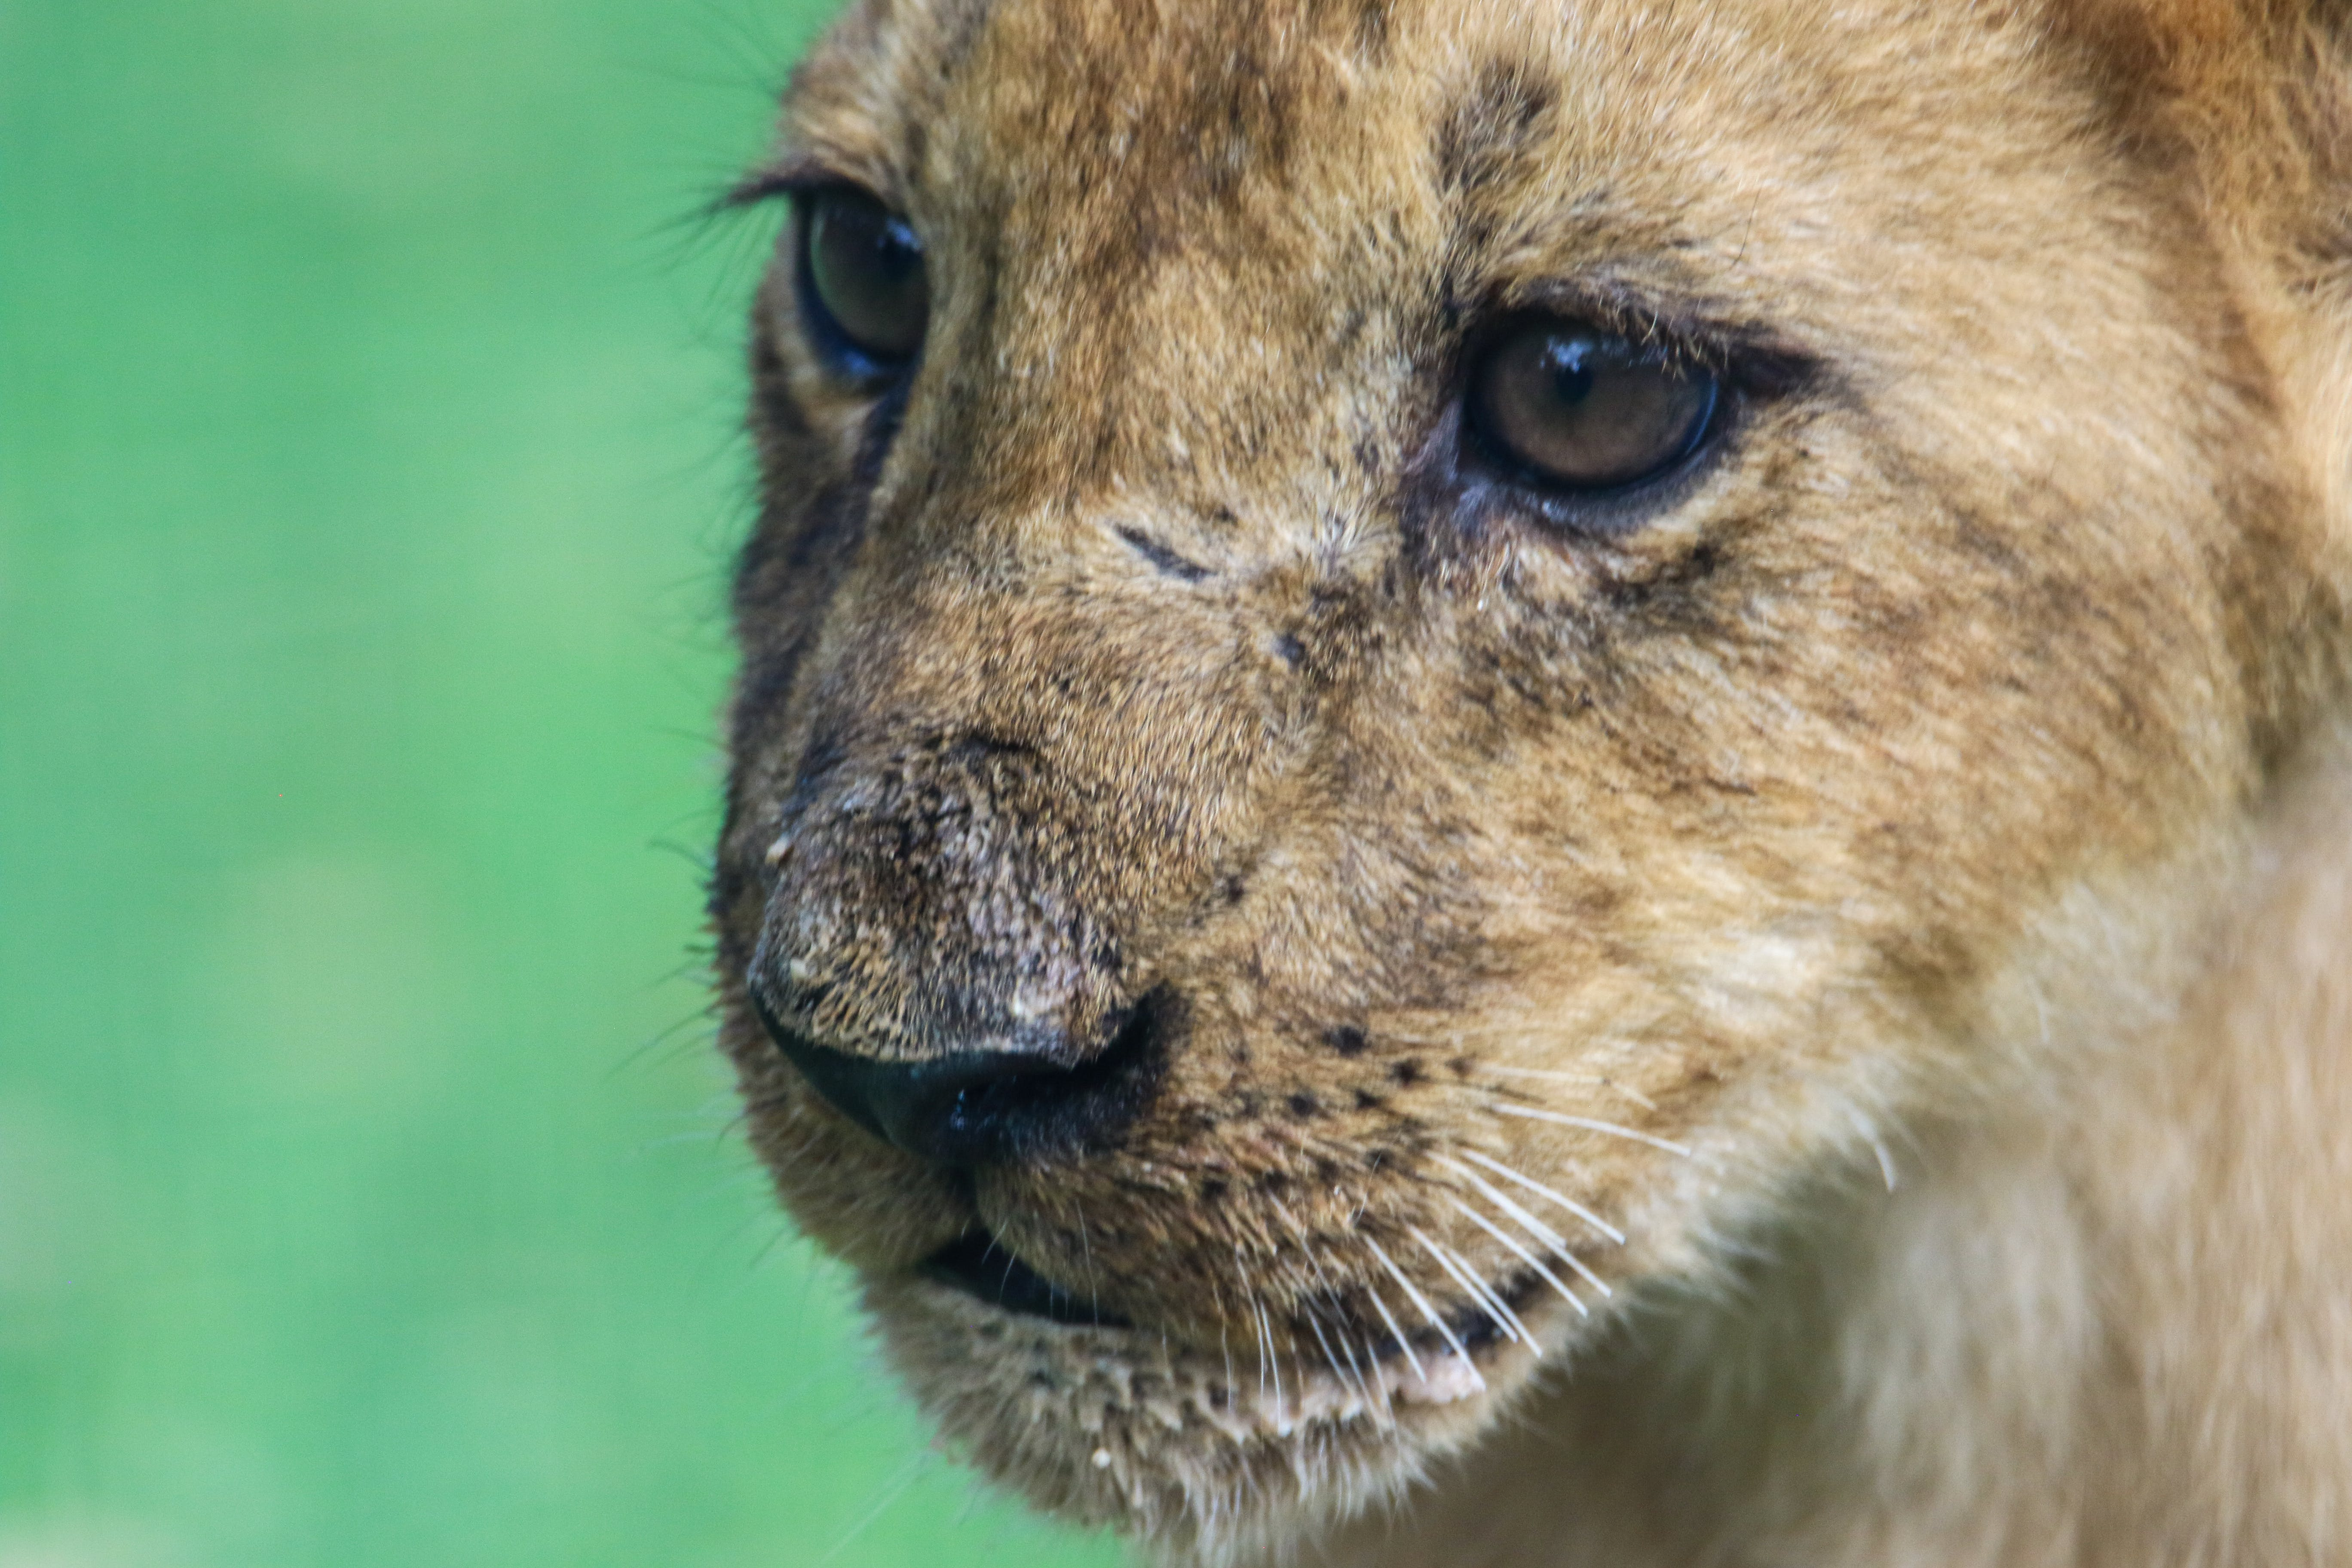 Brown Cub in Shallow Focus Photography